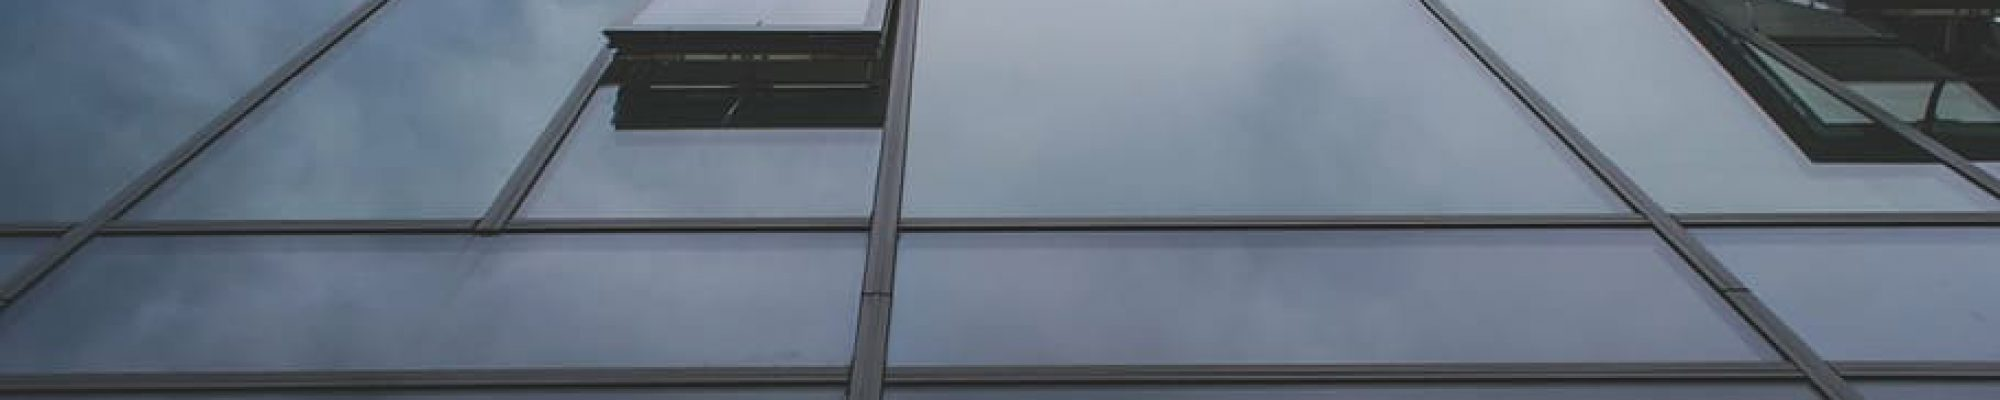 windows-building-architecture-corporate